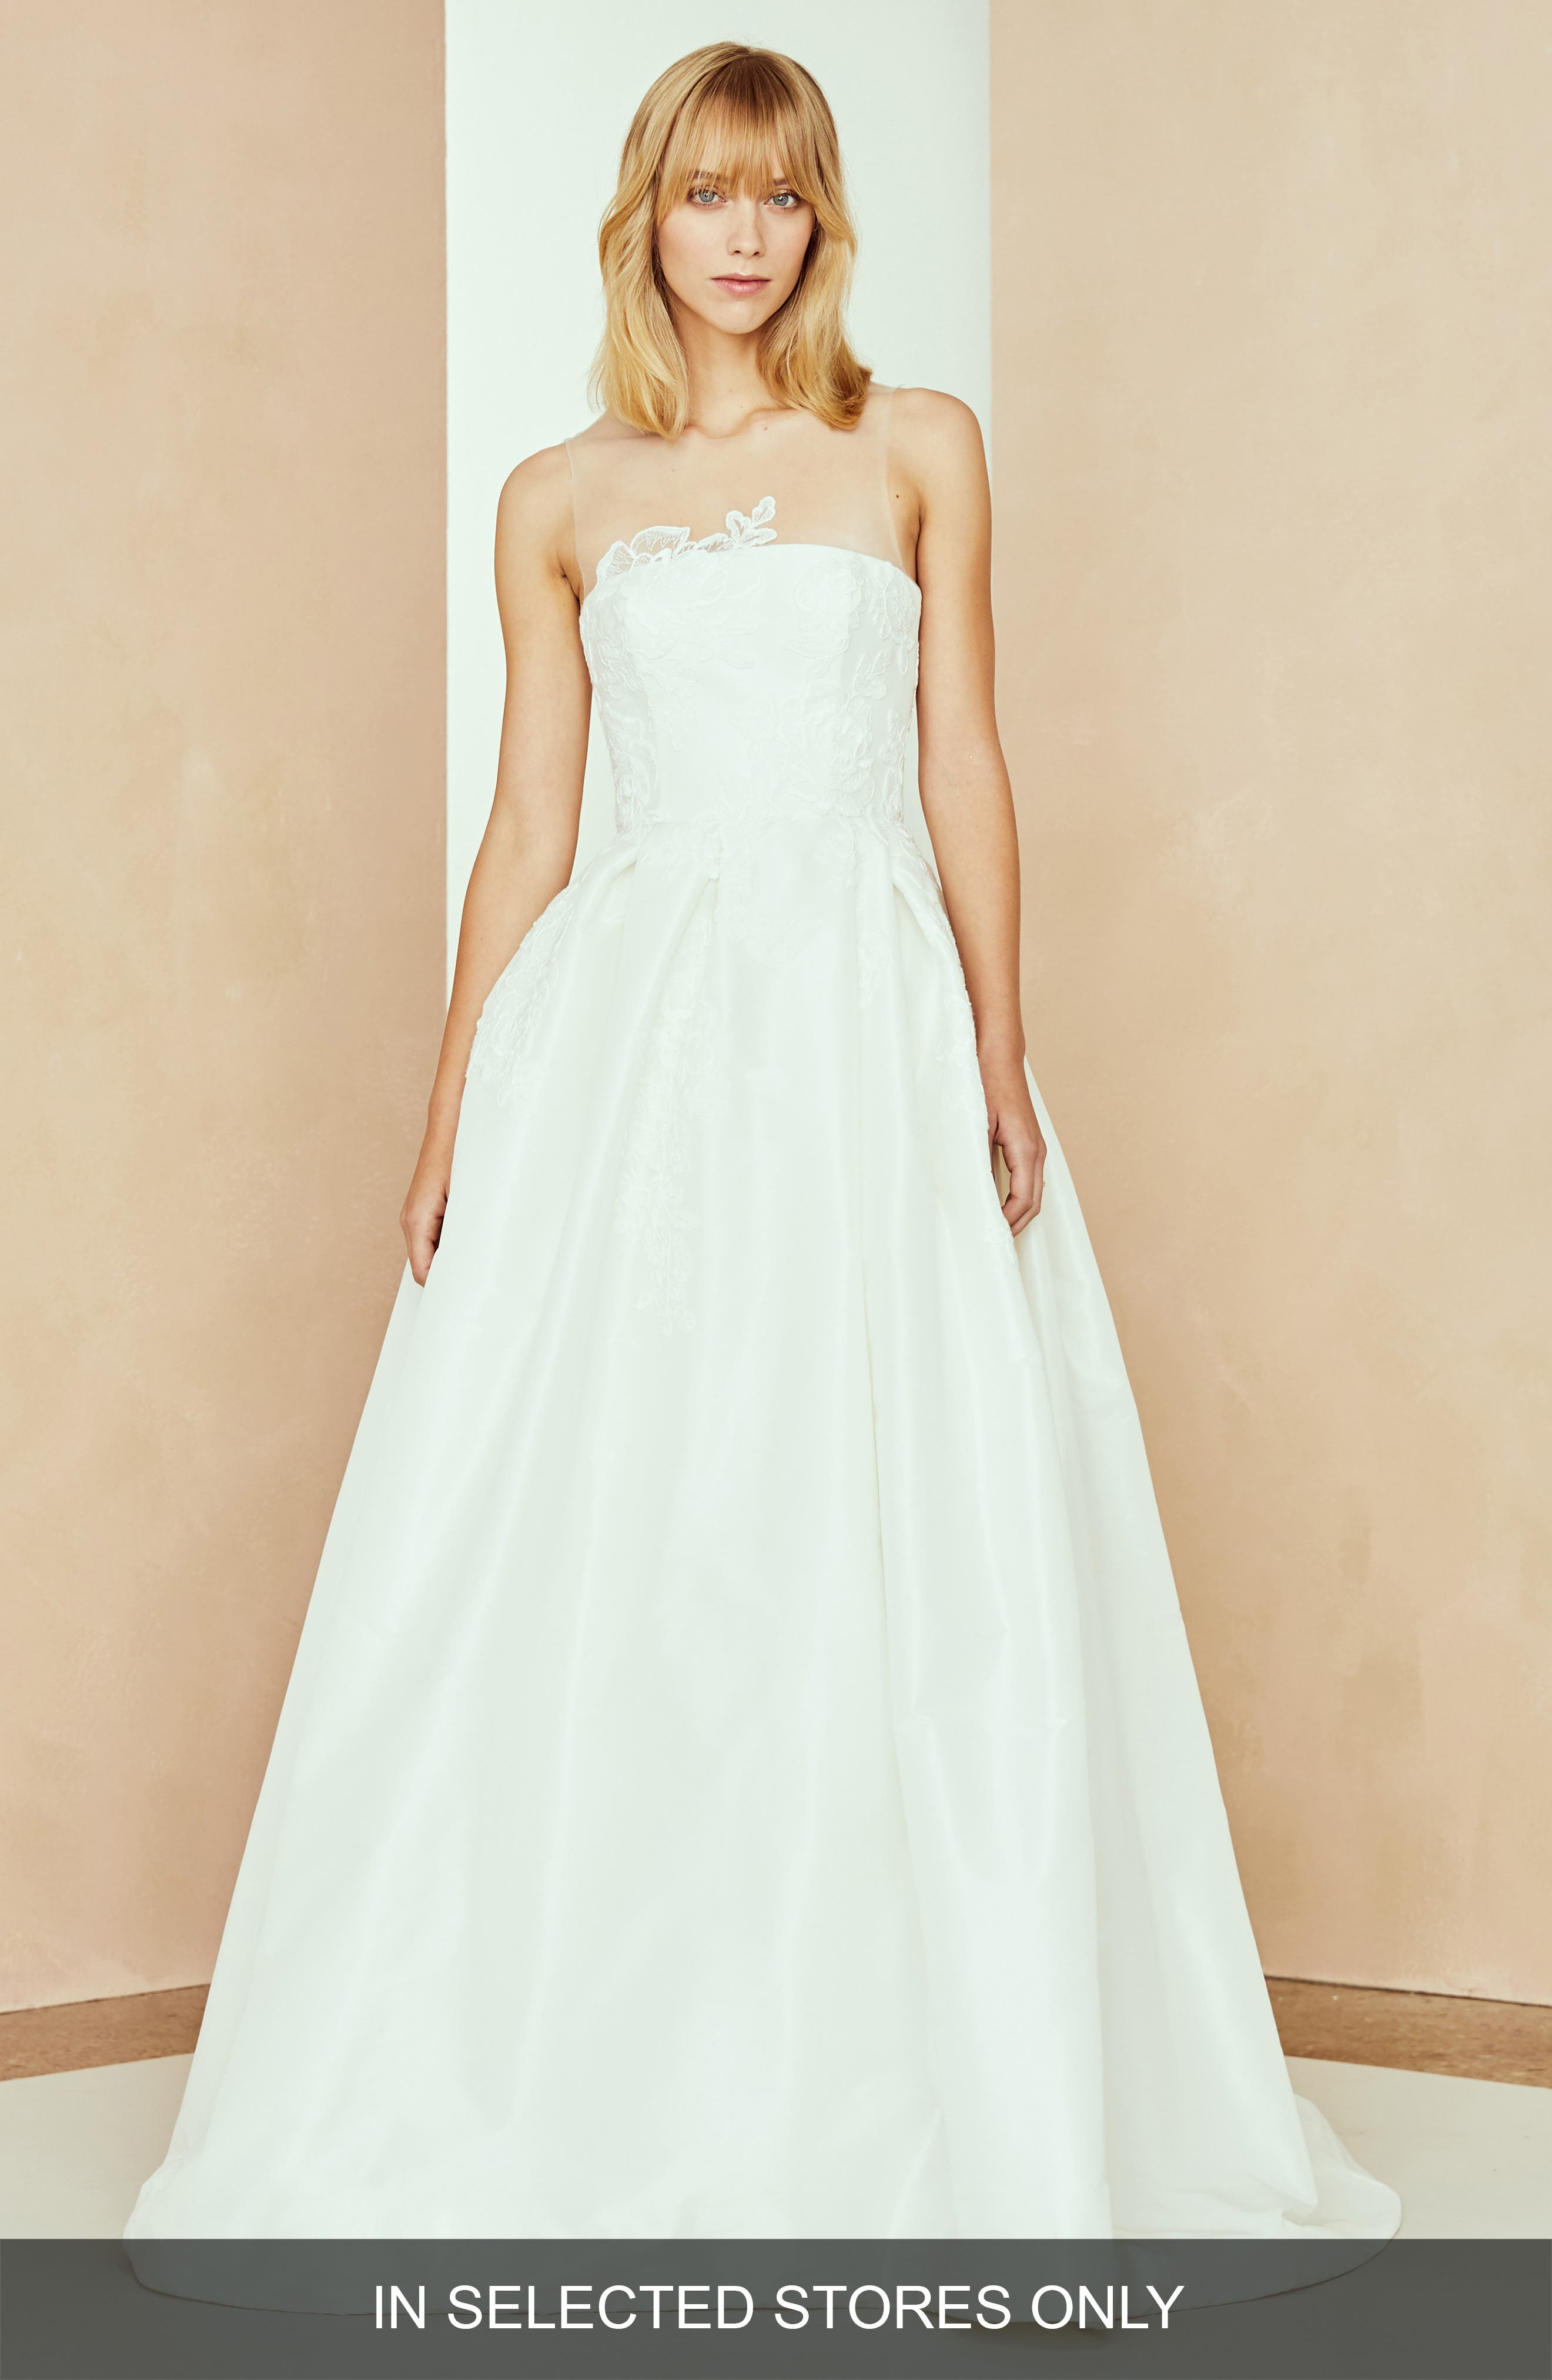 Nouvelle Amsale Bennet Taffeta & Lace Ballgown, Size IN STORE ONLY - Ivory